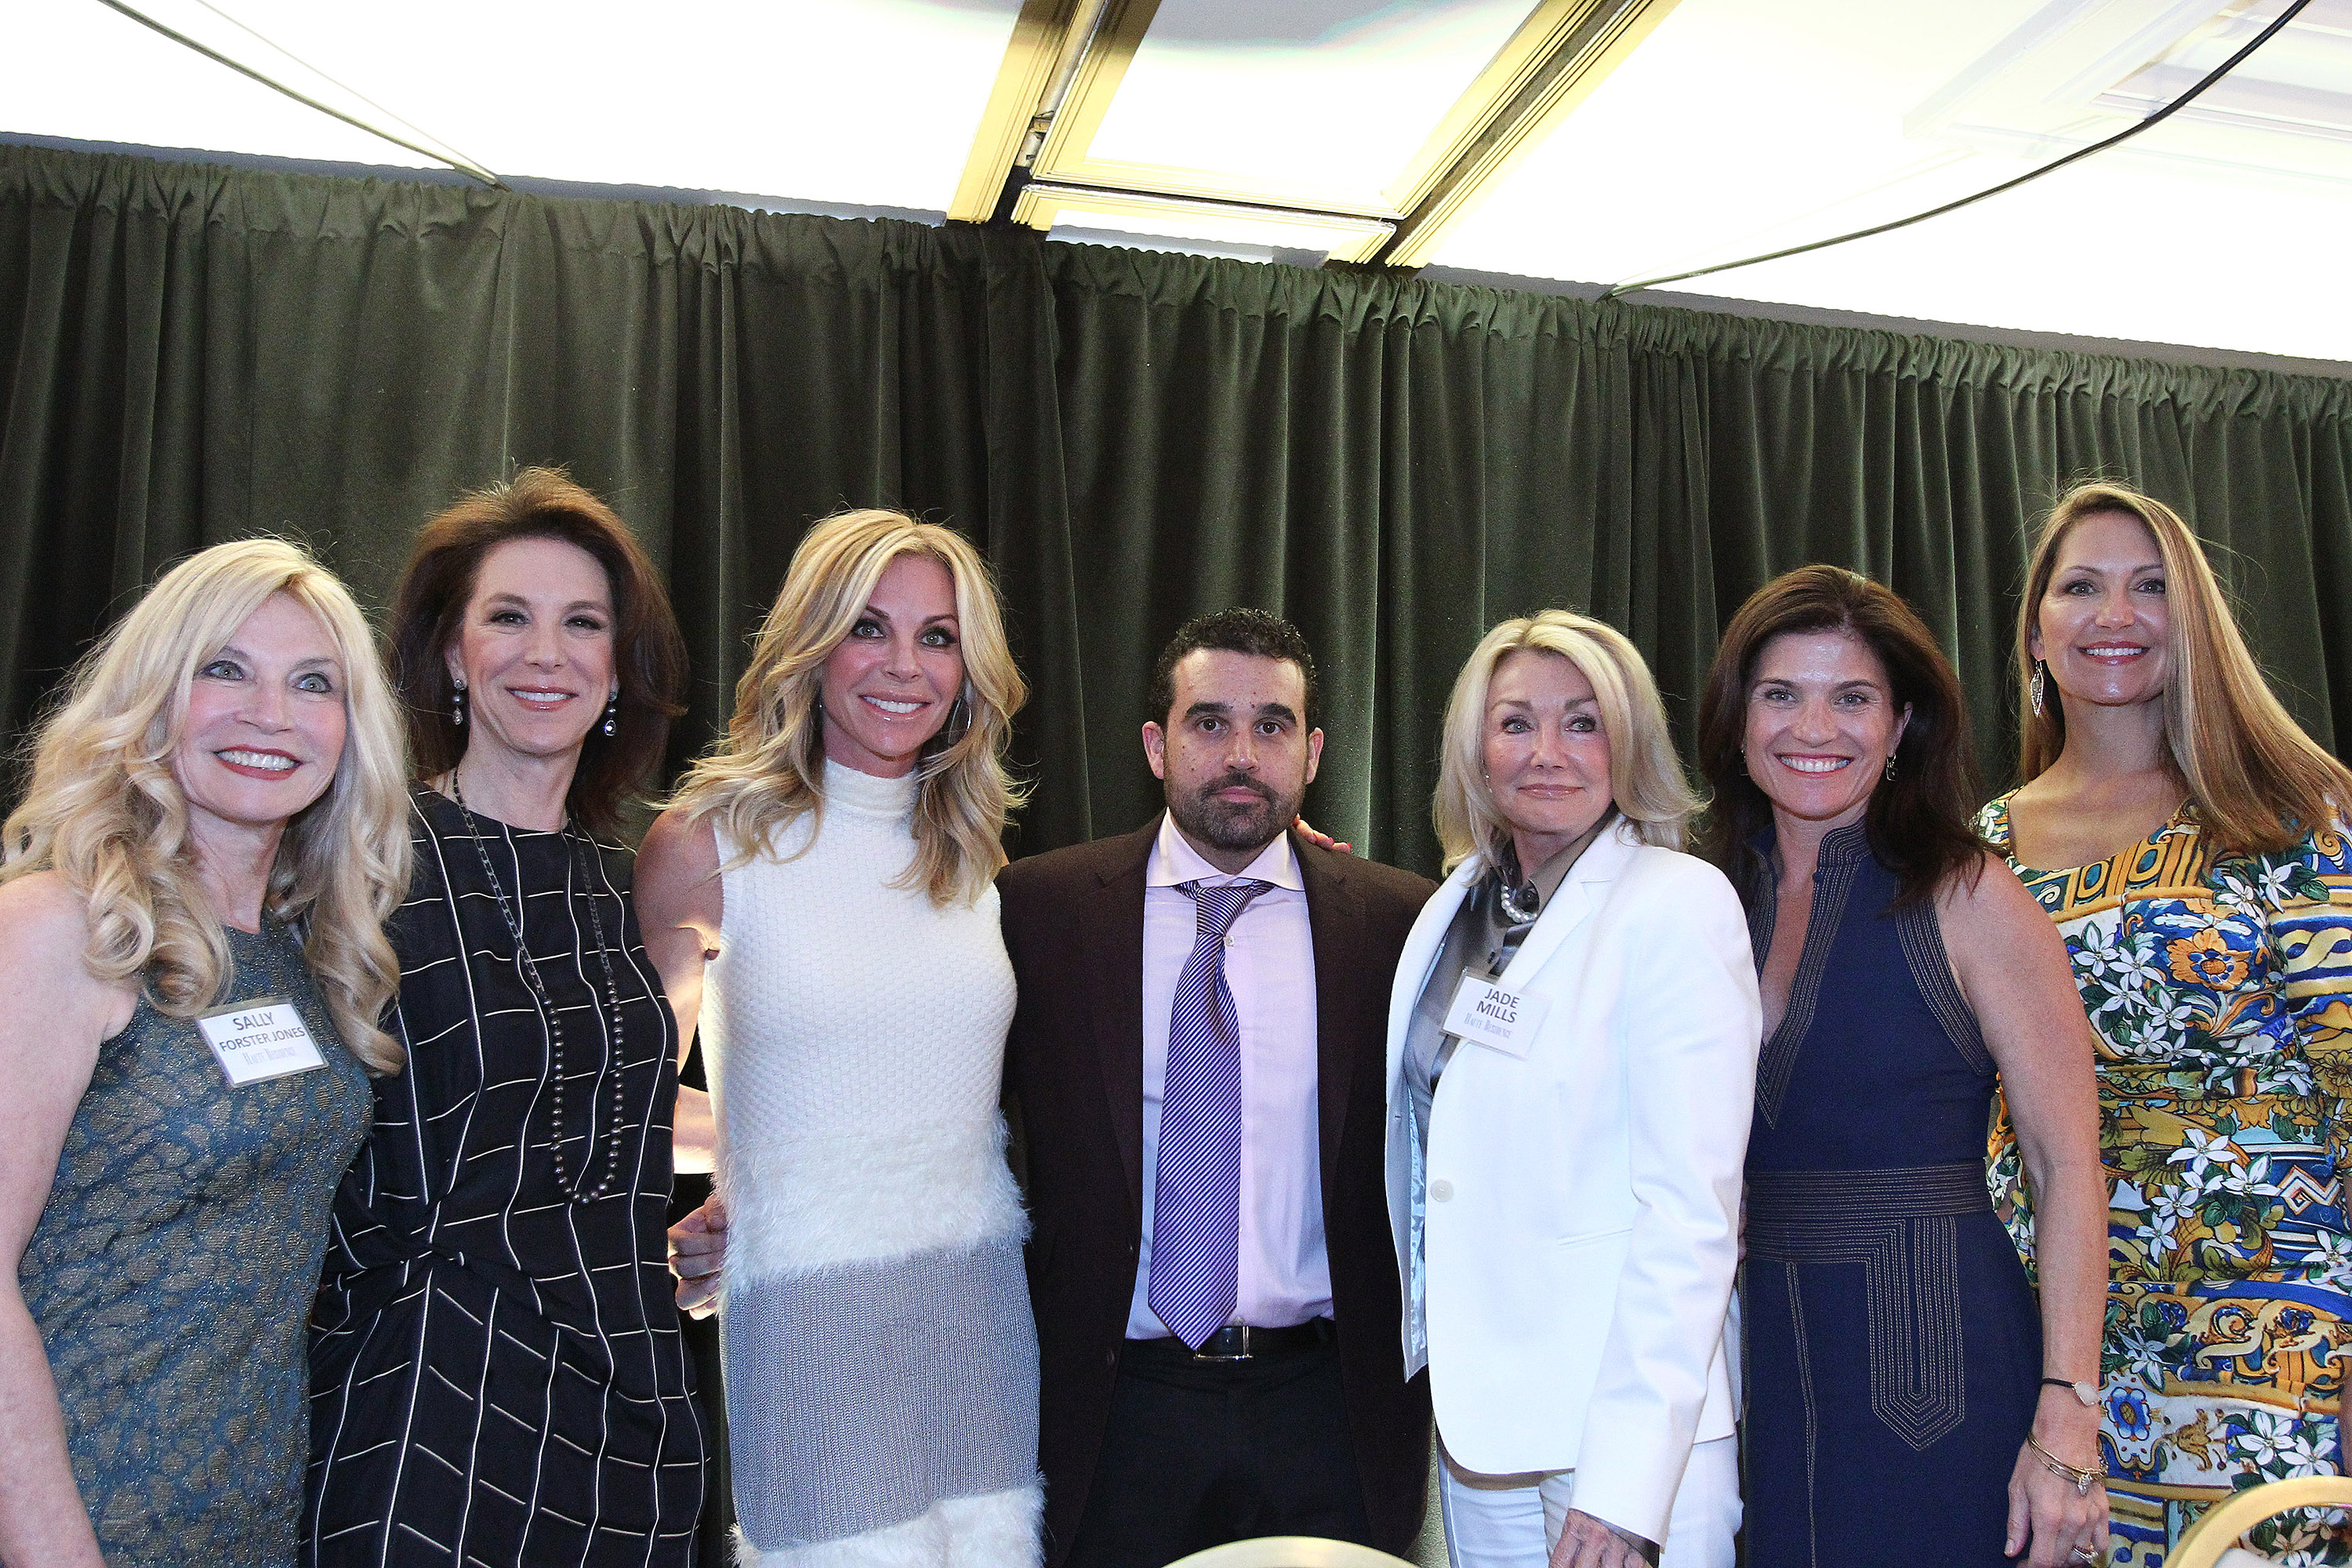 """WEST HOLLYWOOD, CA - MARCH 16:  Publisher of Haute Living & Haute Time Magazine Seth Semilof (C) posese with Cindy Ambuehl, Sally Forster Jones, Jade Mills, Paula Ansara-Wilhelm and Tami Pardee attend the Haute Residence Los Angeles Luxury Real Estate Summit 2016 on March 16, 2016 in West Hollywood, California.  (Photo by Tommaso Boddi/Getty Images for Haute Living)"""